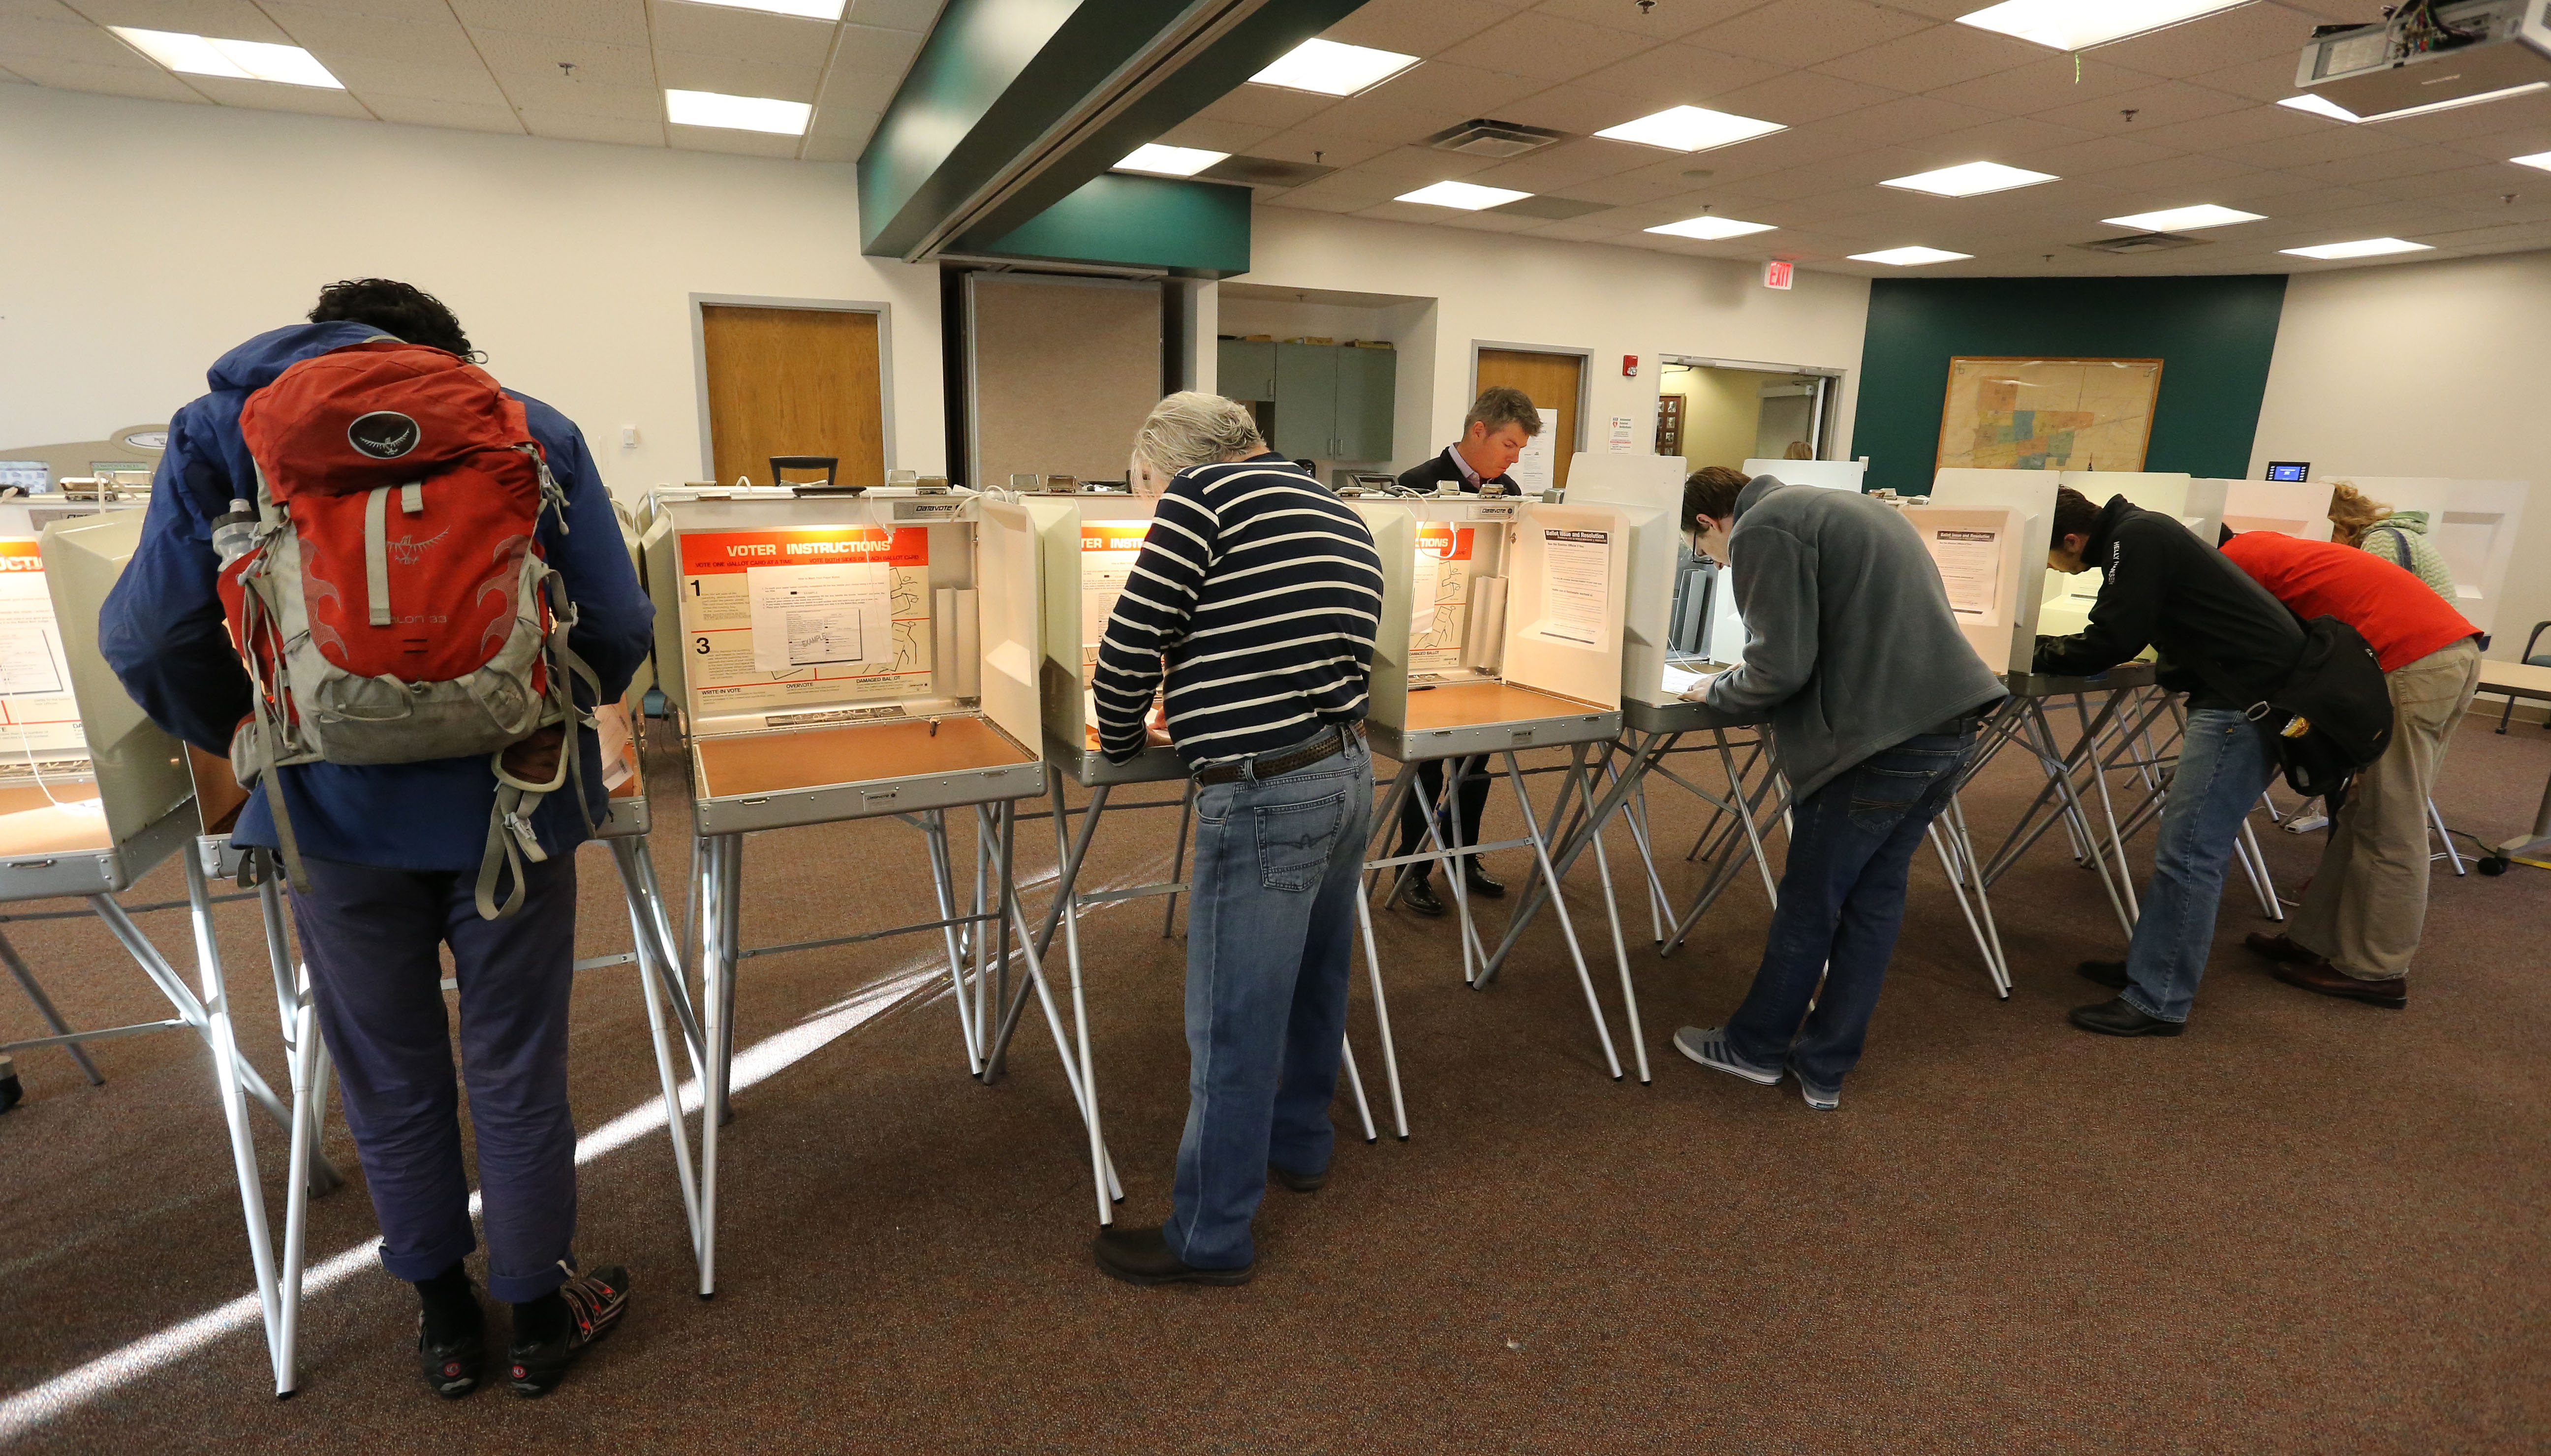 <p>Voters complete their ballots inside a polling center at the Boulder County Clerk and Recorder's officeon Election Day2014.</p>